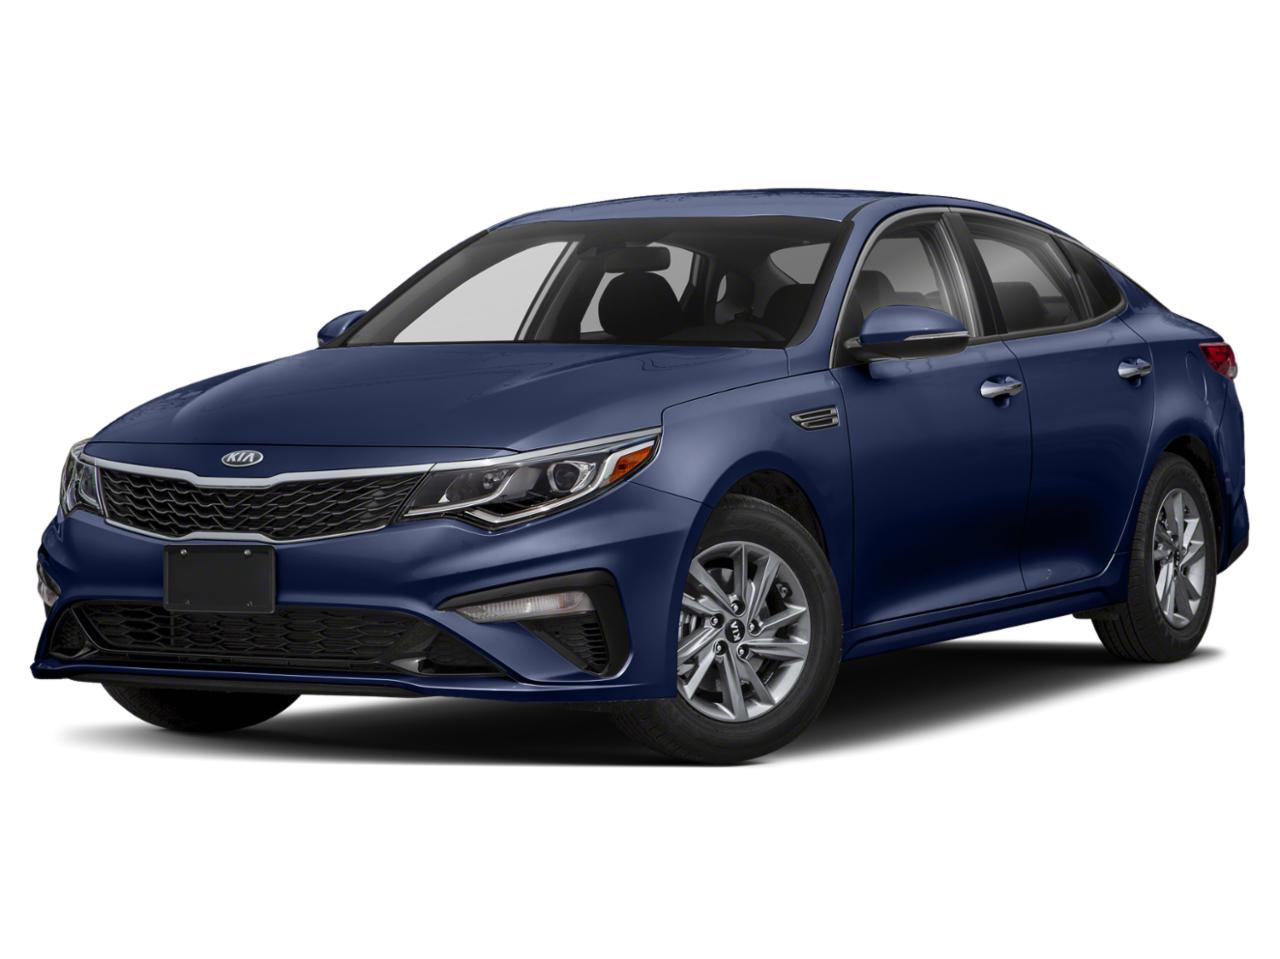 2019 Kia Optima Vehicle Photo in Jasper, GA 30143